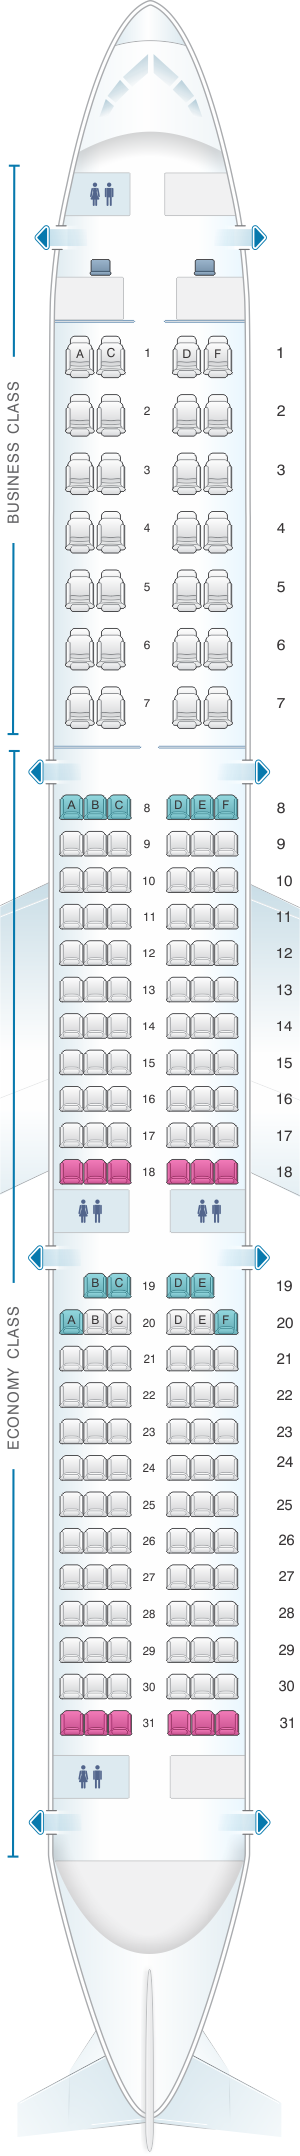 Seat Map Aeroflot Russian Airlines Airbus A321 Config.1 ...